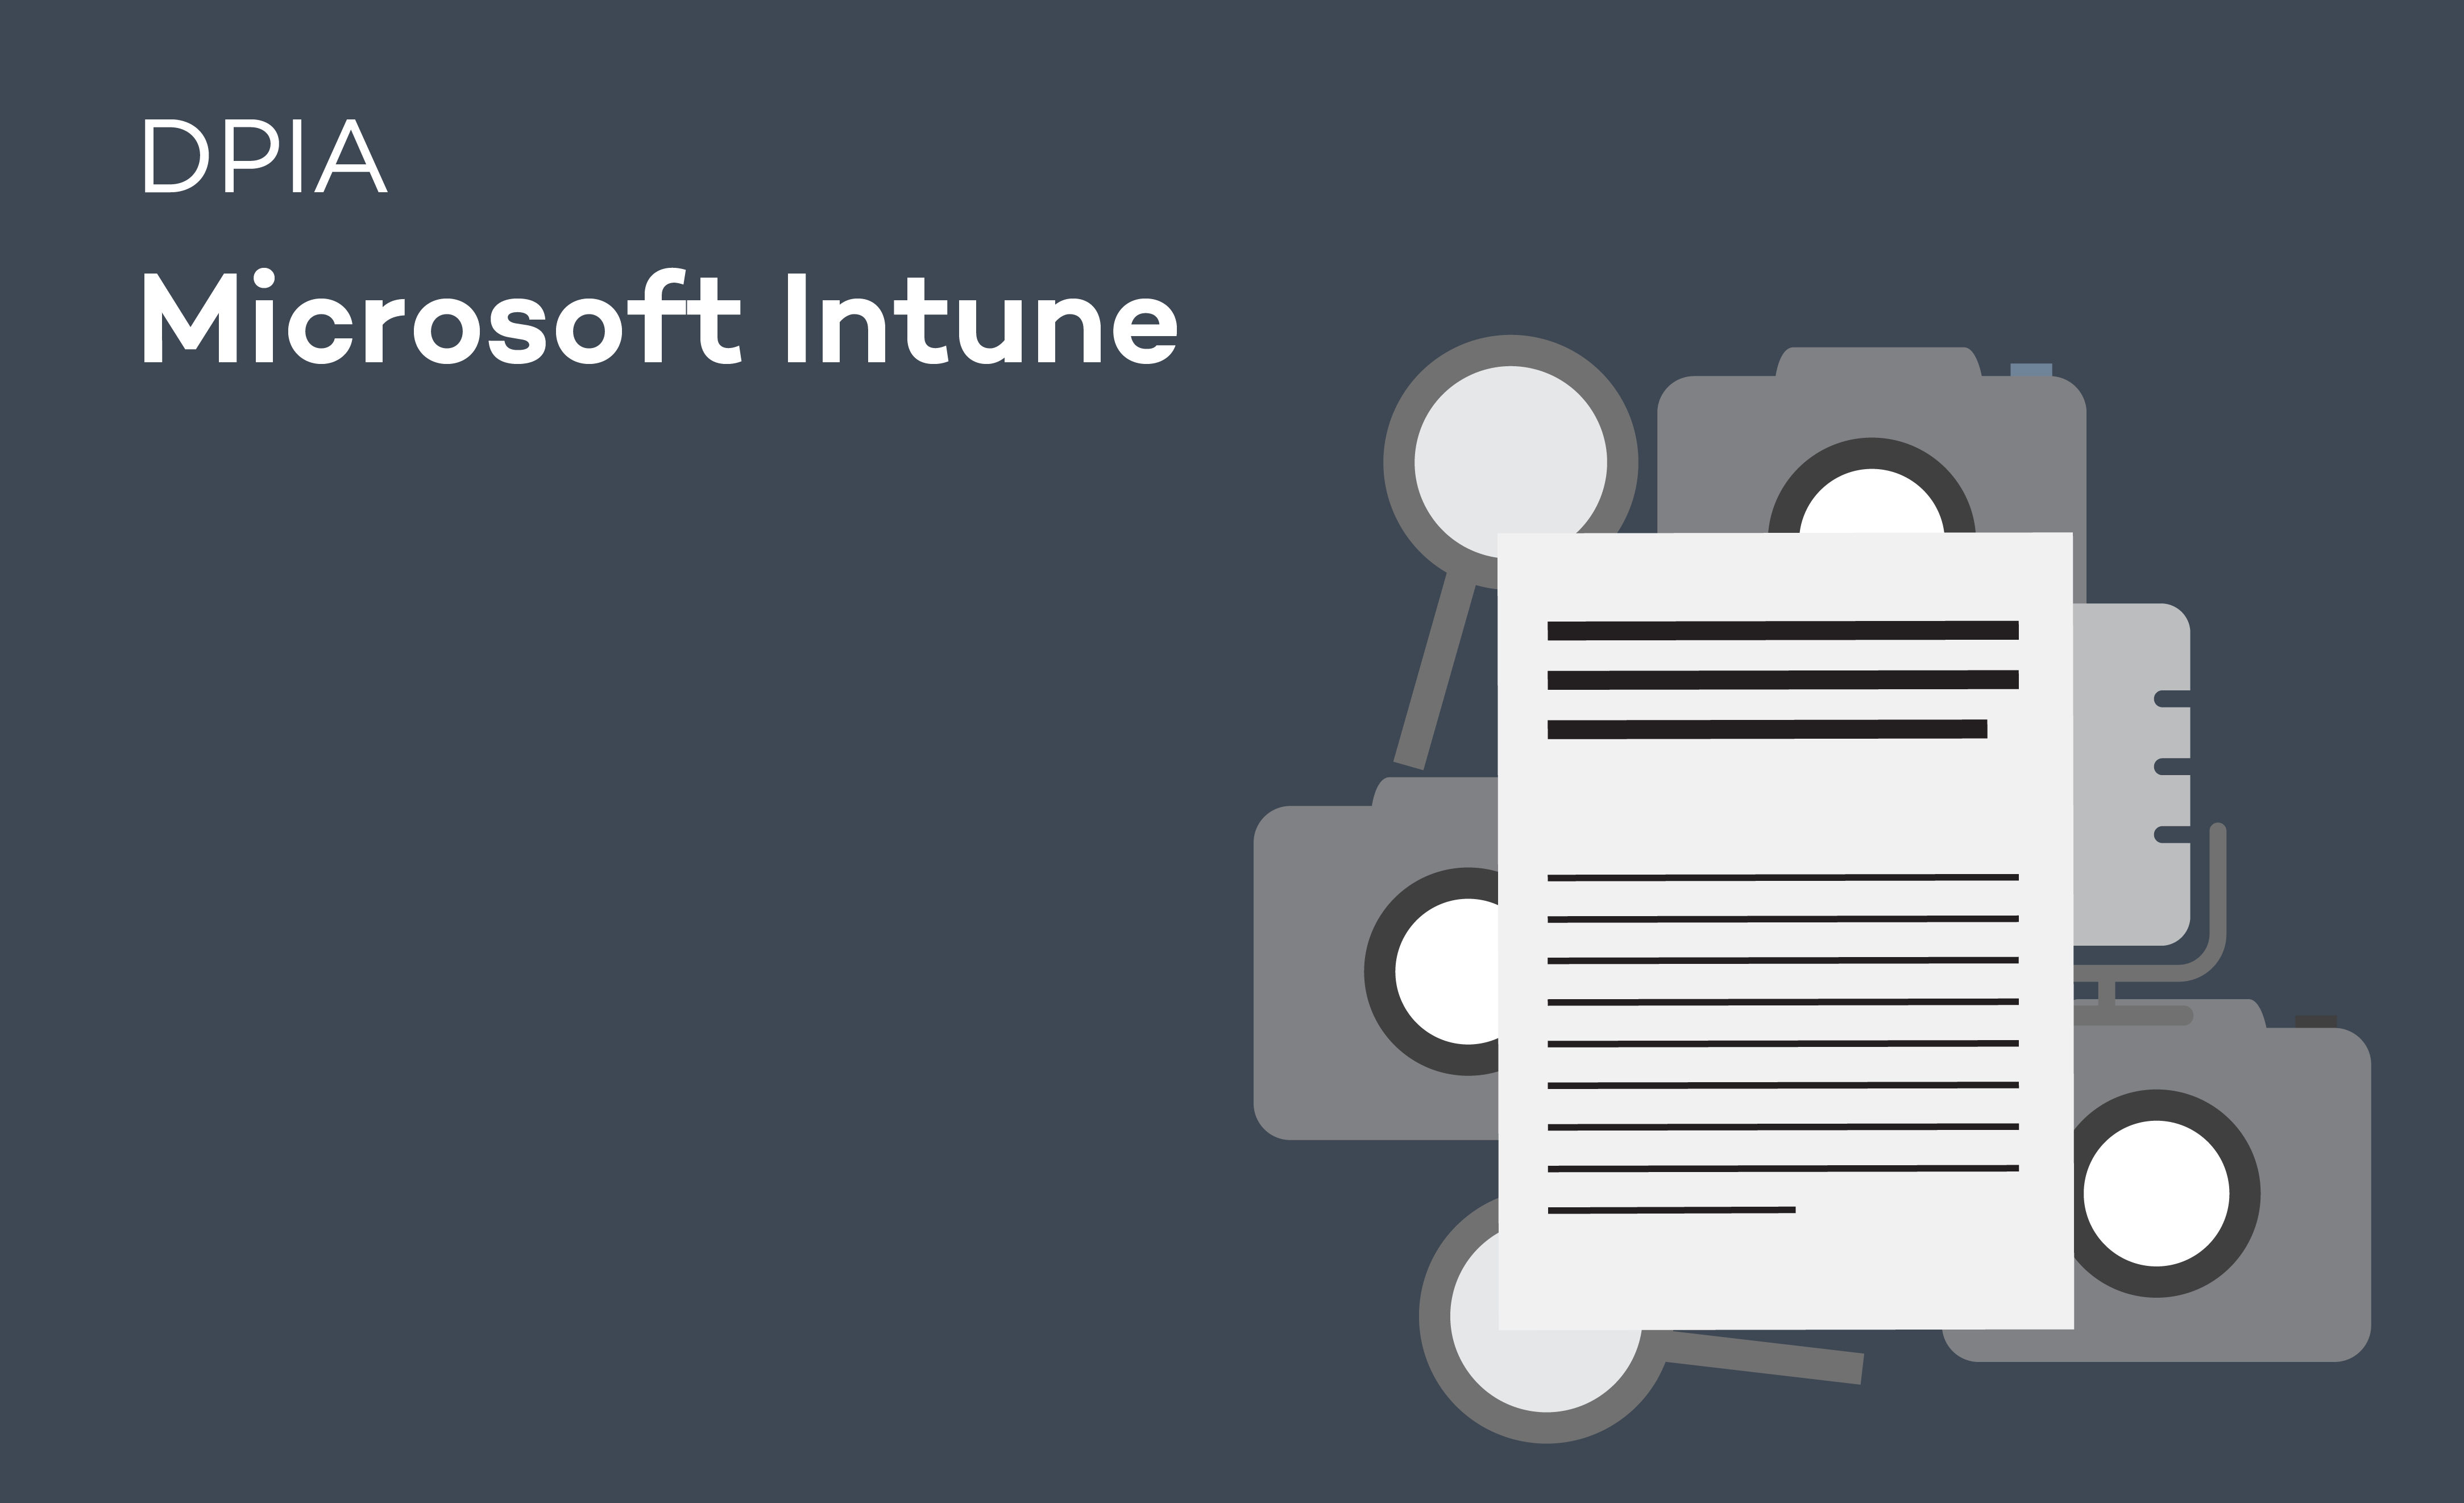 New research Microsoft Intune: five low data protection risks